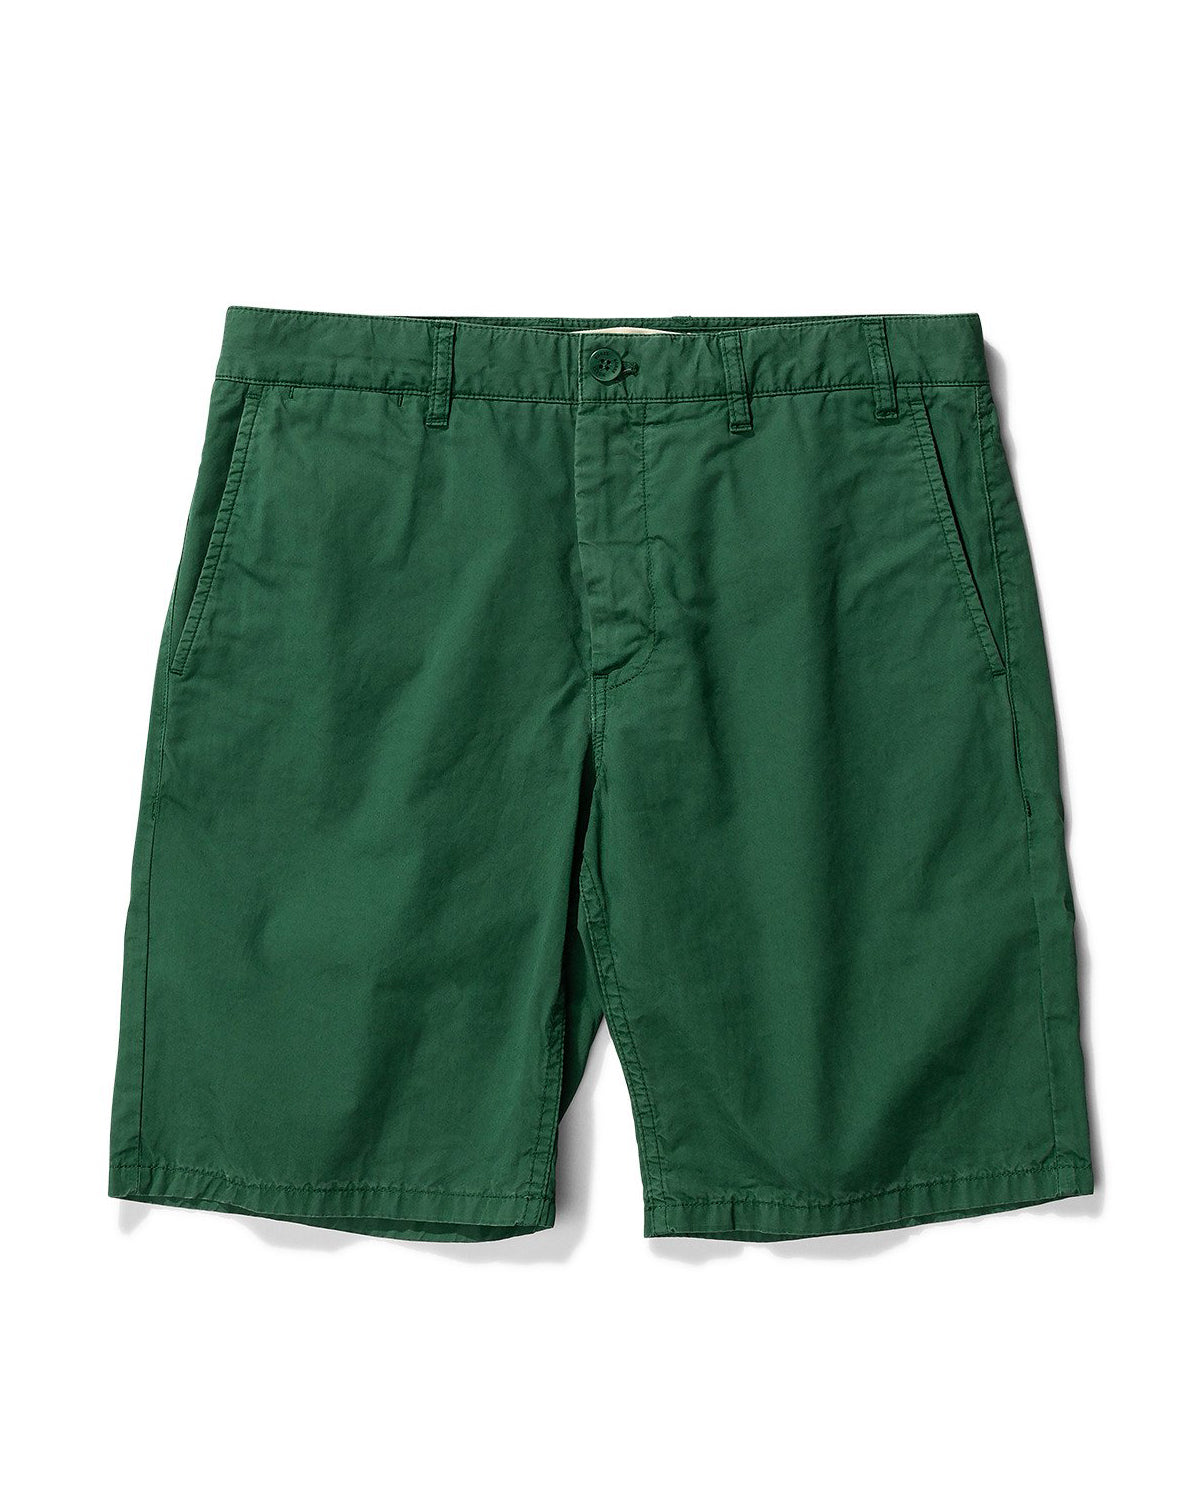 Aros Light Twill Shorts - Sporting Green